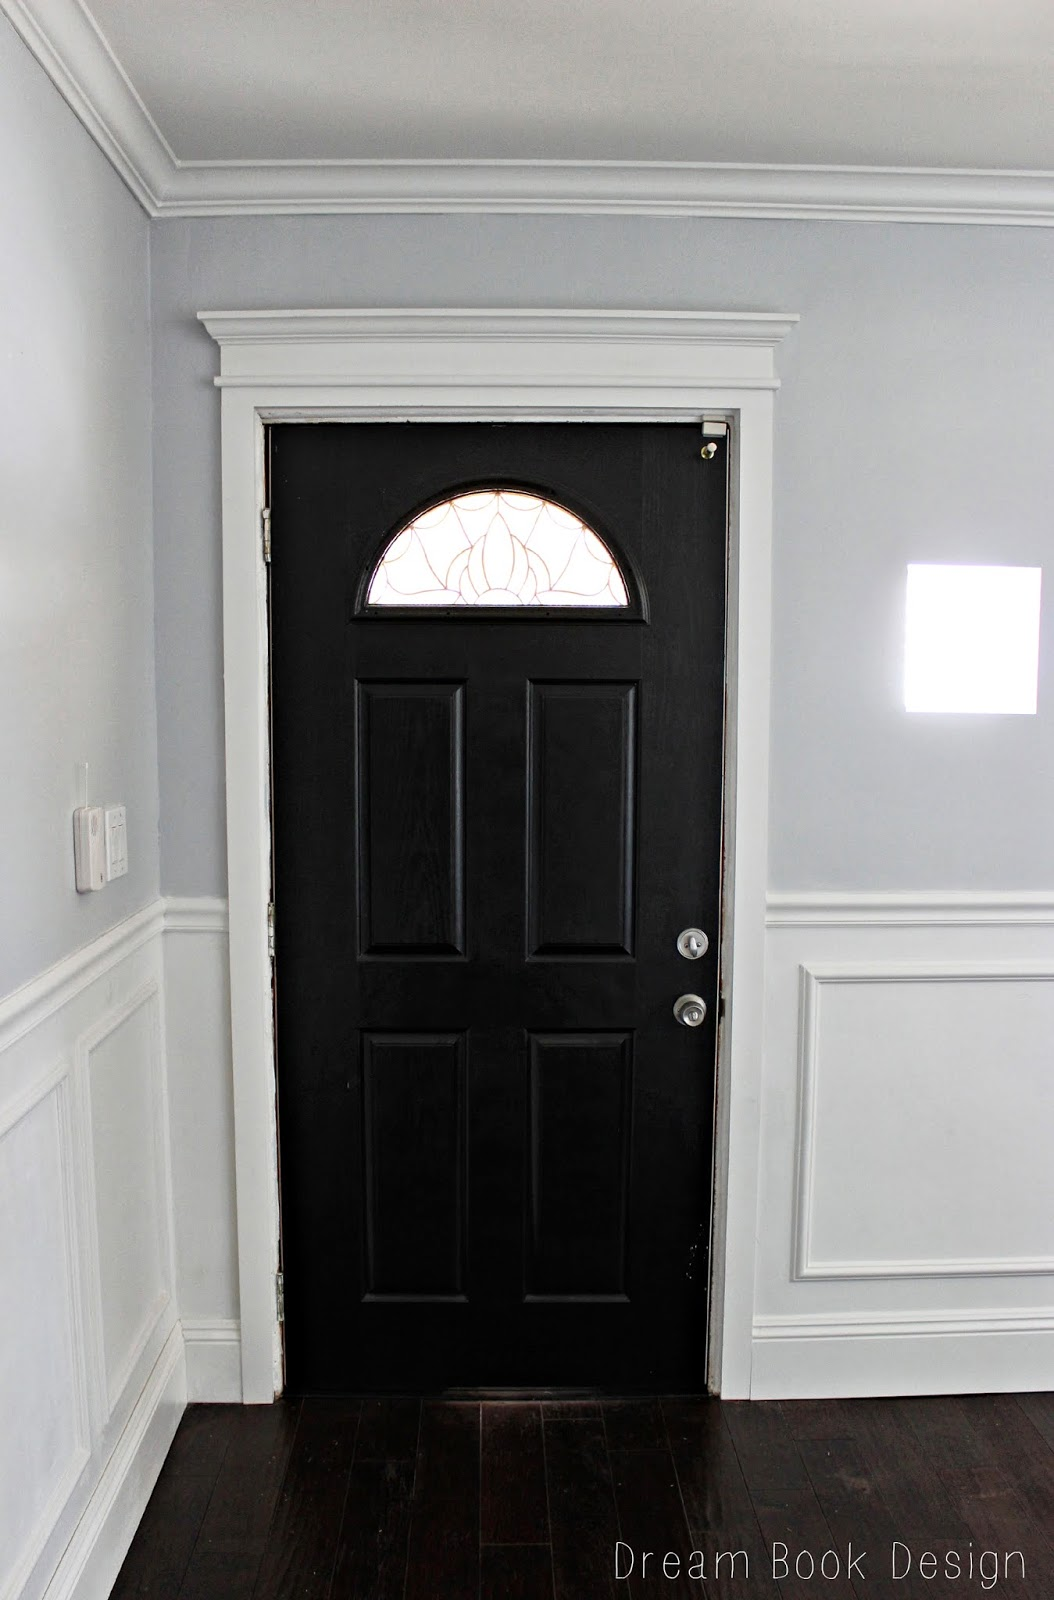 Satin Or Semi Gloss For Doors Bindu Bhatia Astrology